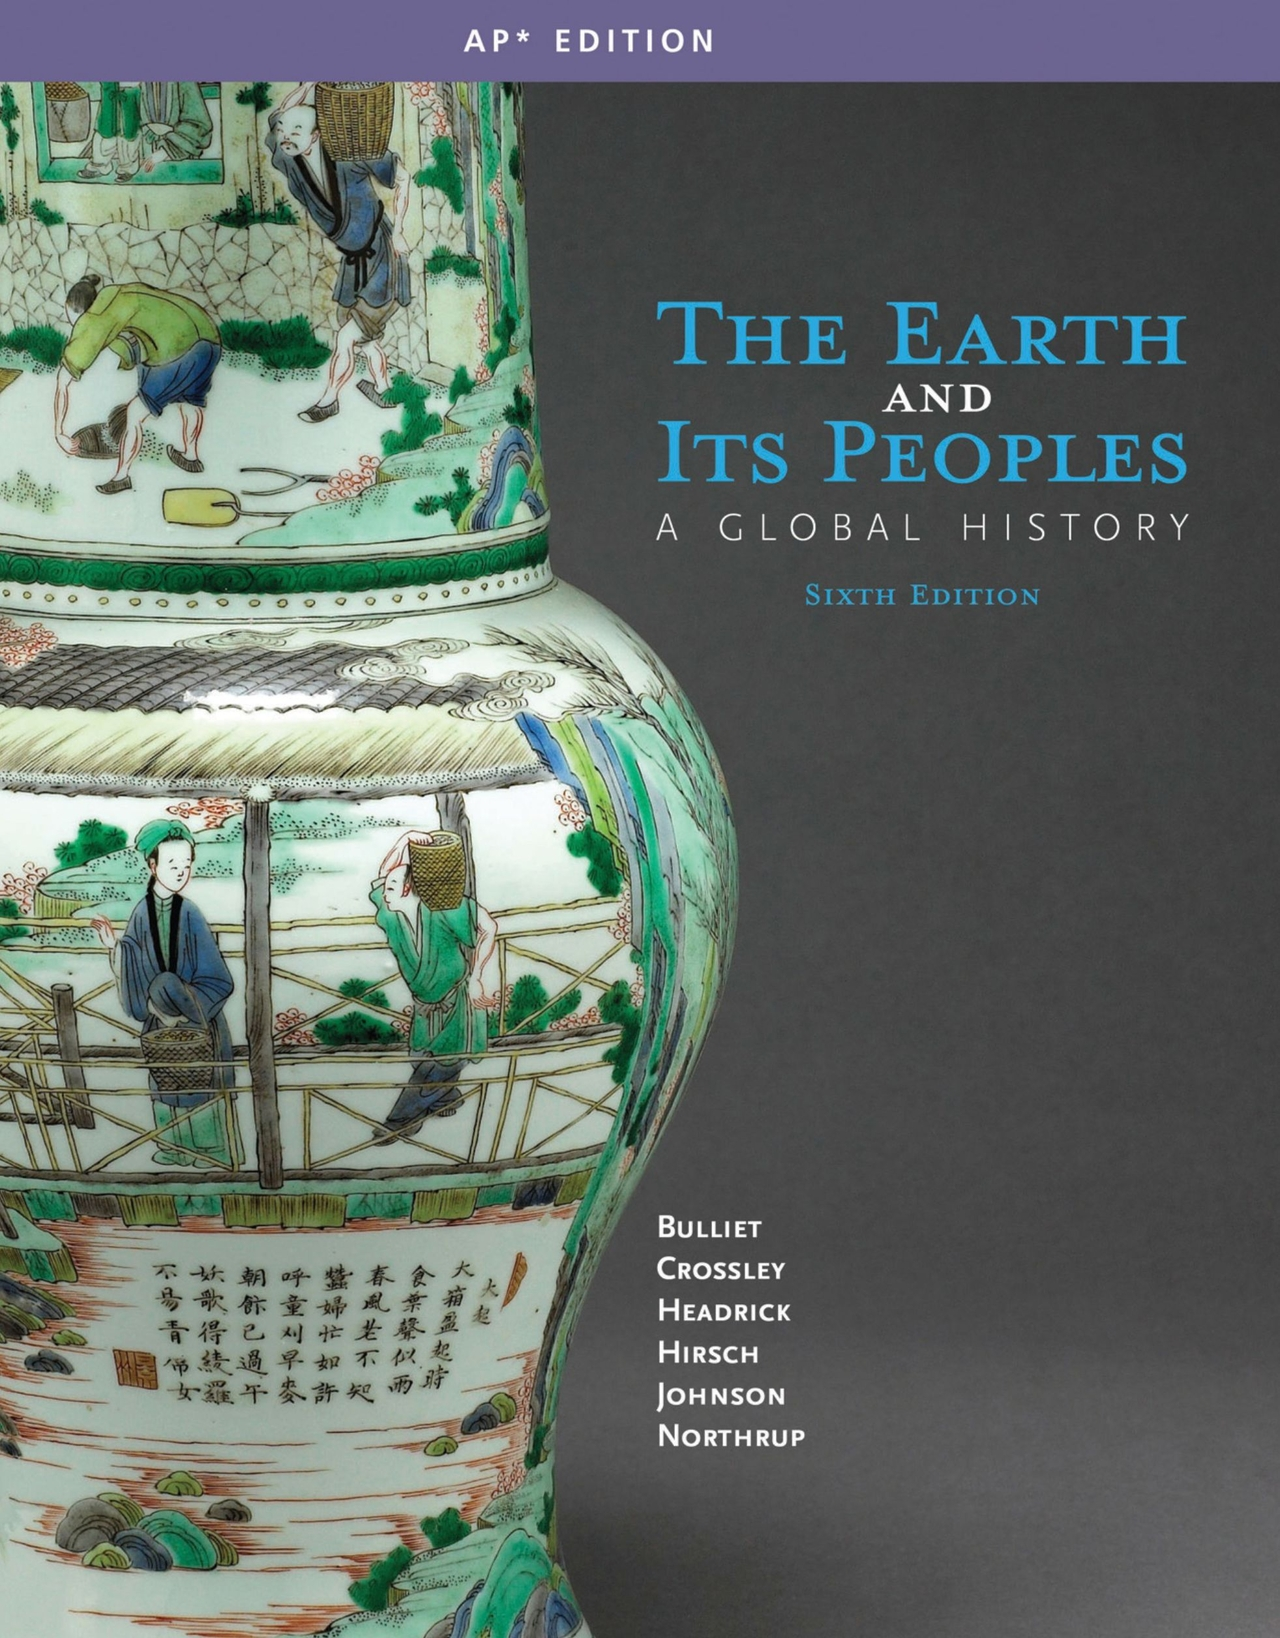 ap world history the world and its people 3rd edition Browse and read ap world history the earth and its peoples 4th edition ap world history the earth and its peoples 4th edition interestingly, ap world history the earth and its peoples 4th edition that you really wait for now is coming.